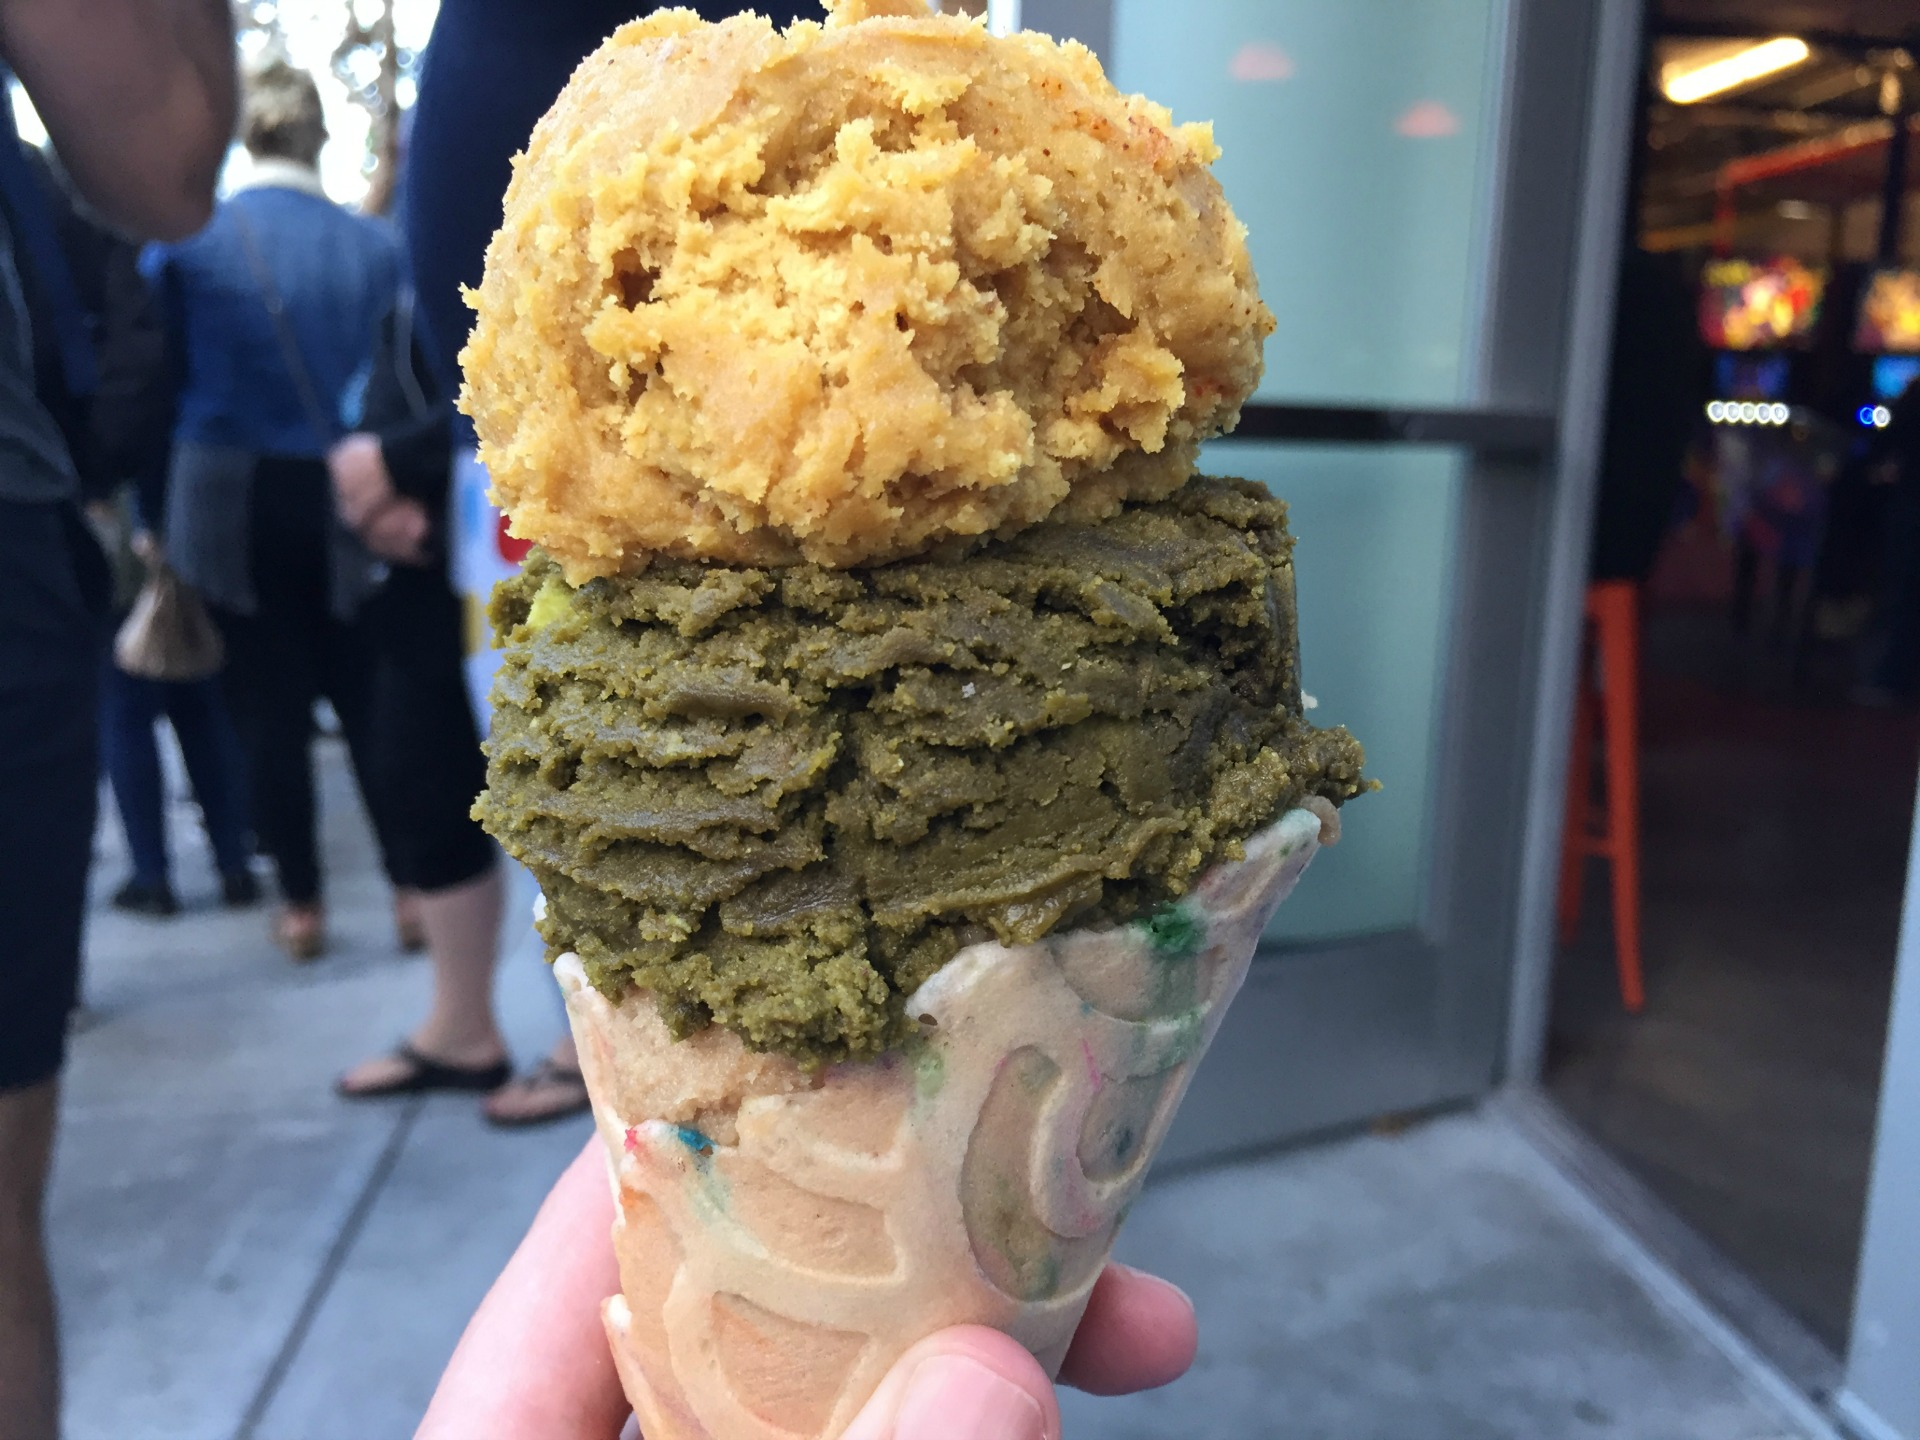 Don't like chocolate? Try the Lemon Chili or Matcha Dood.